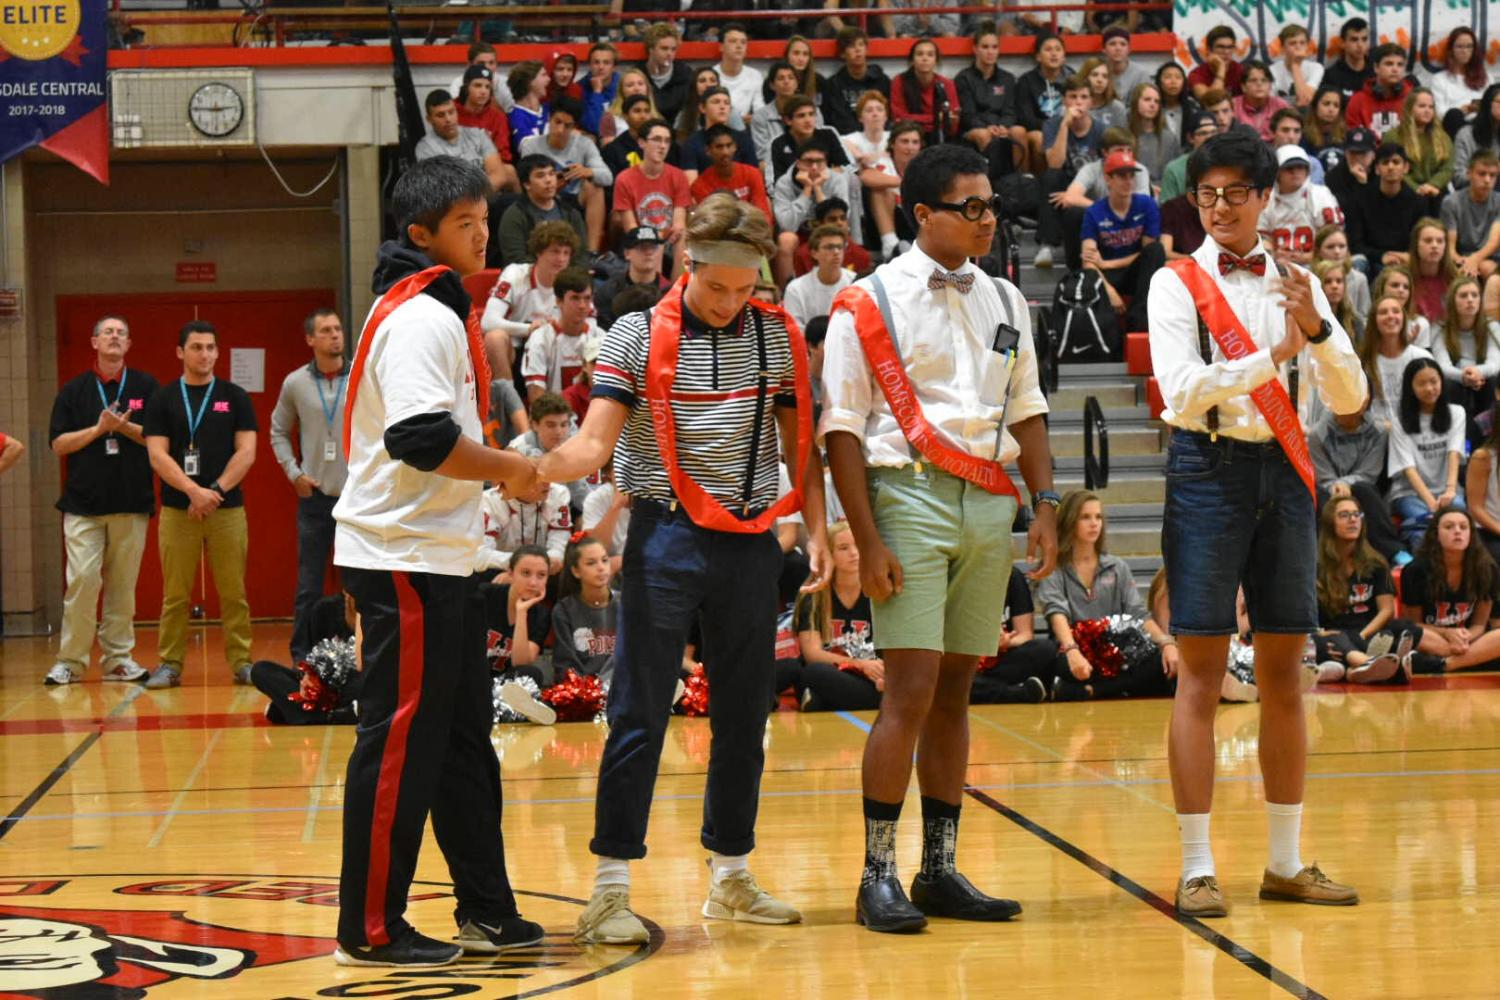 Homecoming+king+candidates+%28left+to+right%29+Kevin+Qin%2C+Tomas+Baliutavicius%2C+Joel+Guerra%2C+and+Alex+Choi+stand+in+front+of+students+after+their+place+on+court+was+announced.